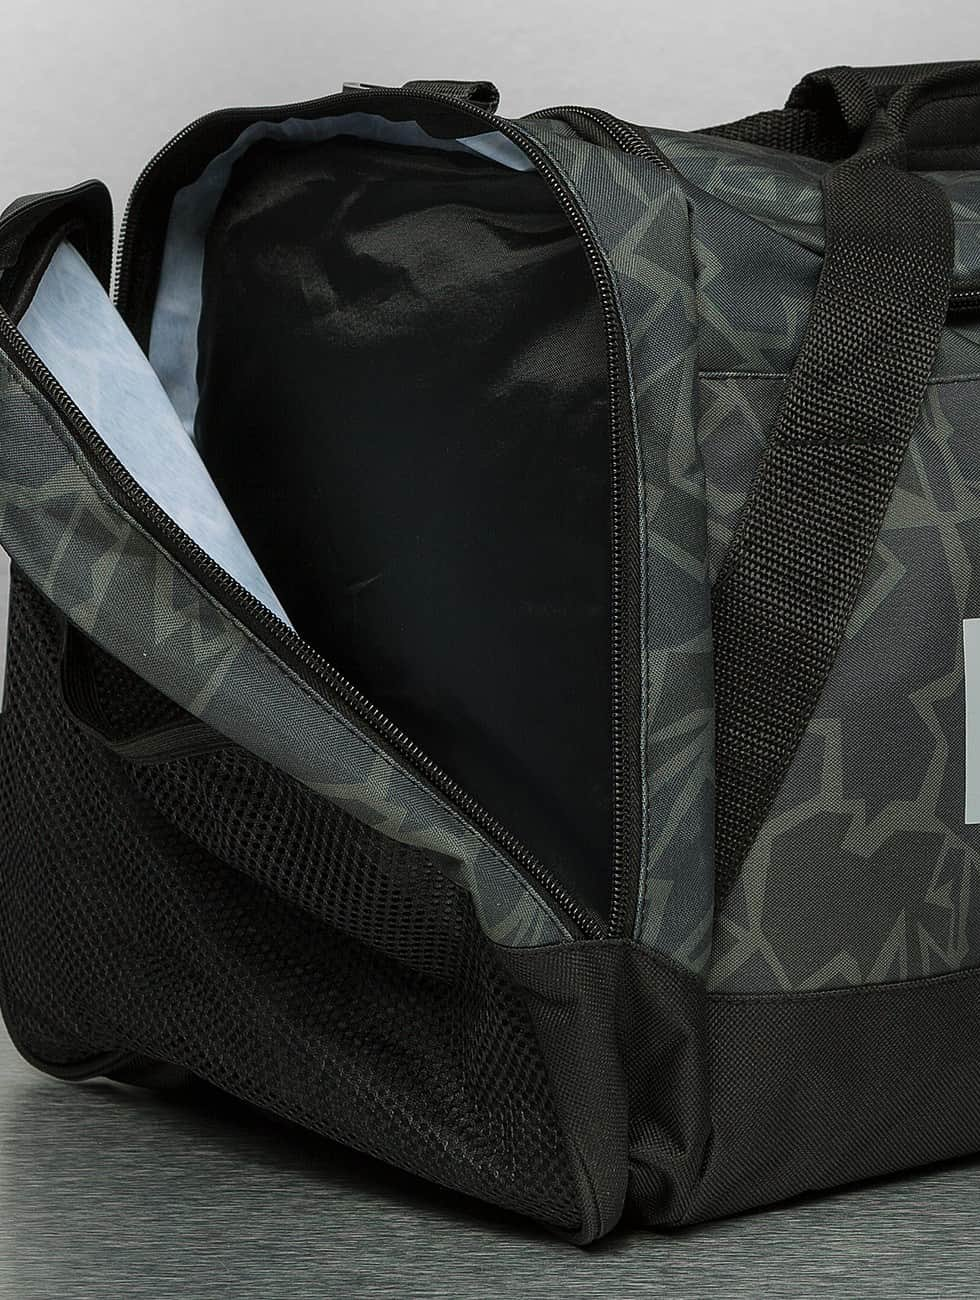 Forever Collectibles Bag NFL Camouflage Oakland Raiders black